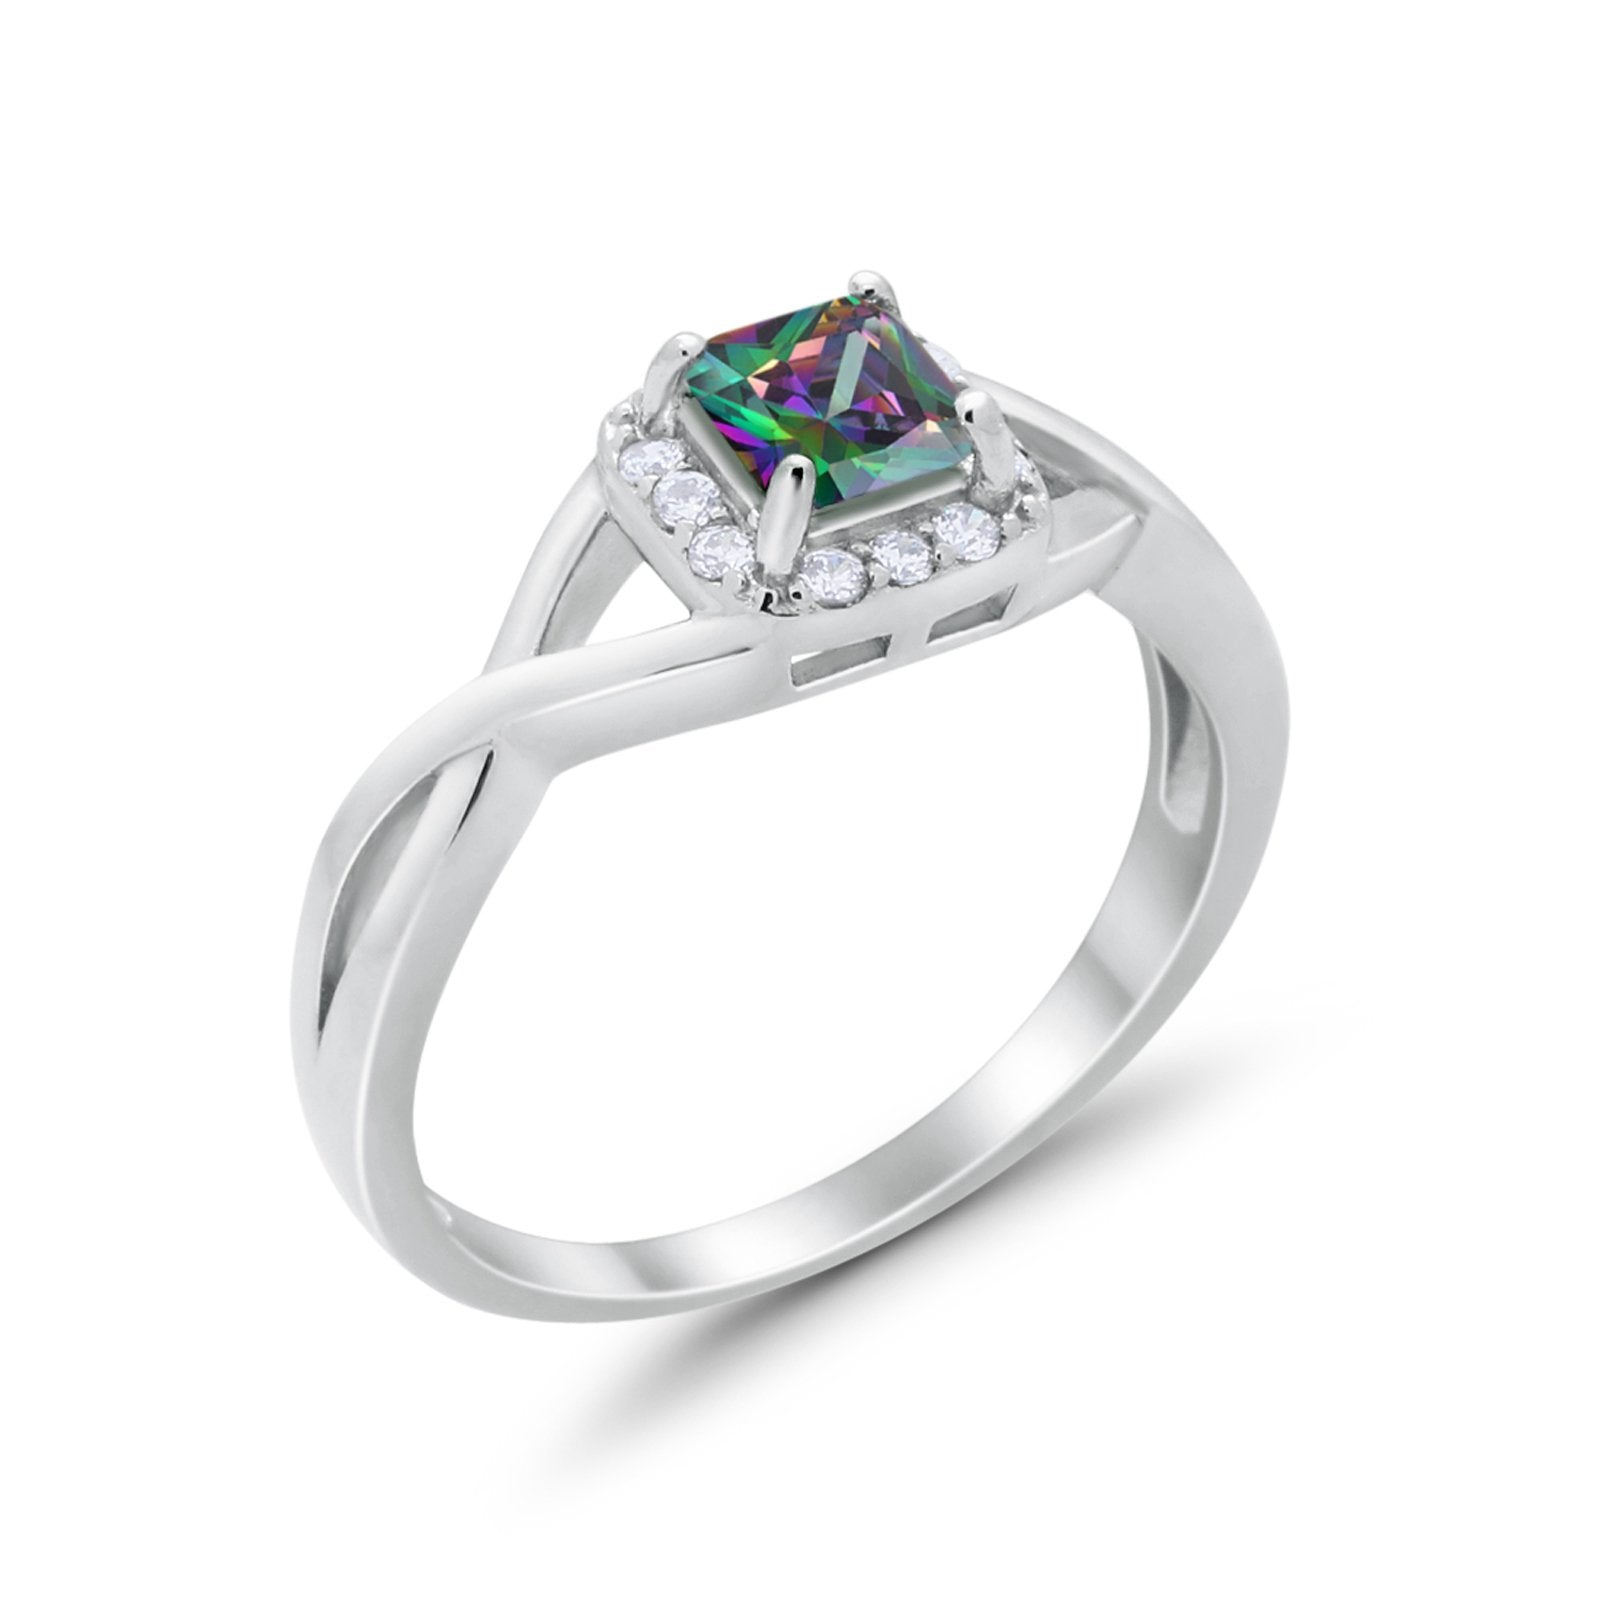 Solitaire Infinity Shank Ring Princess Cut Simulated Rainbow CZ 925 Sterling Silver